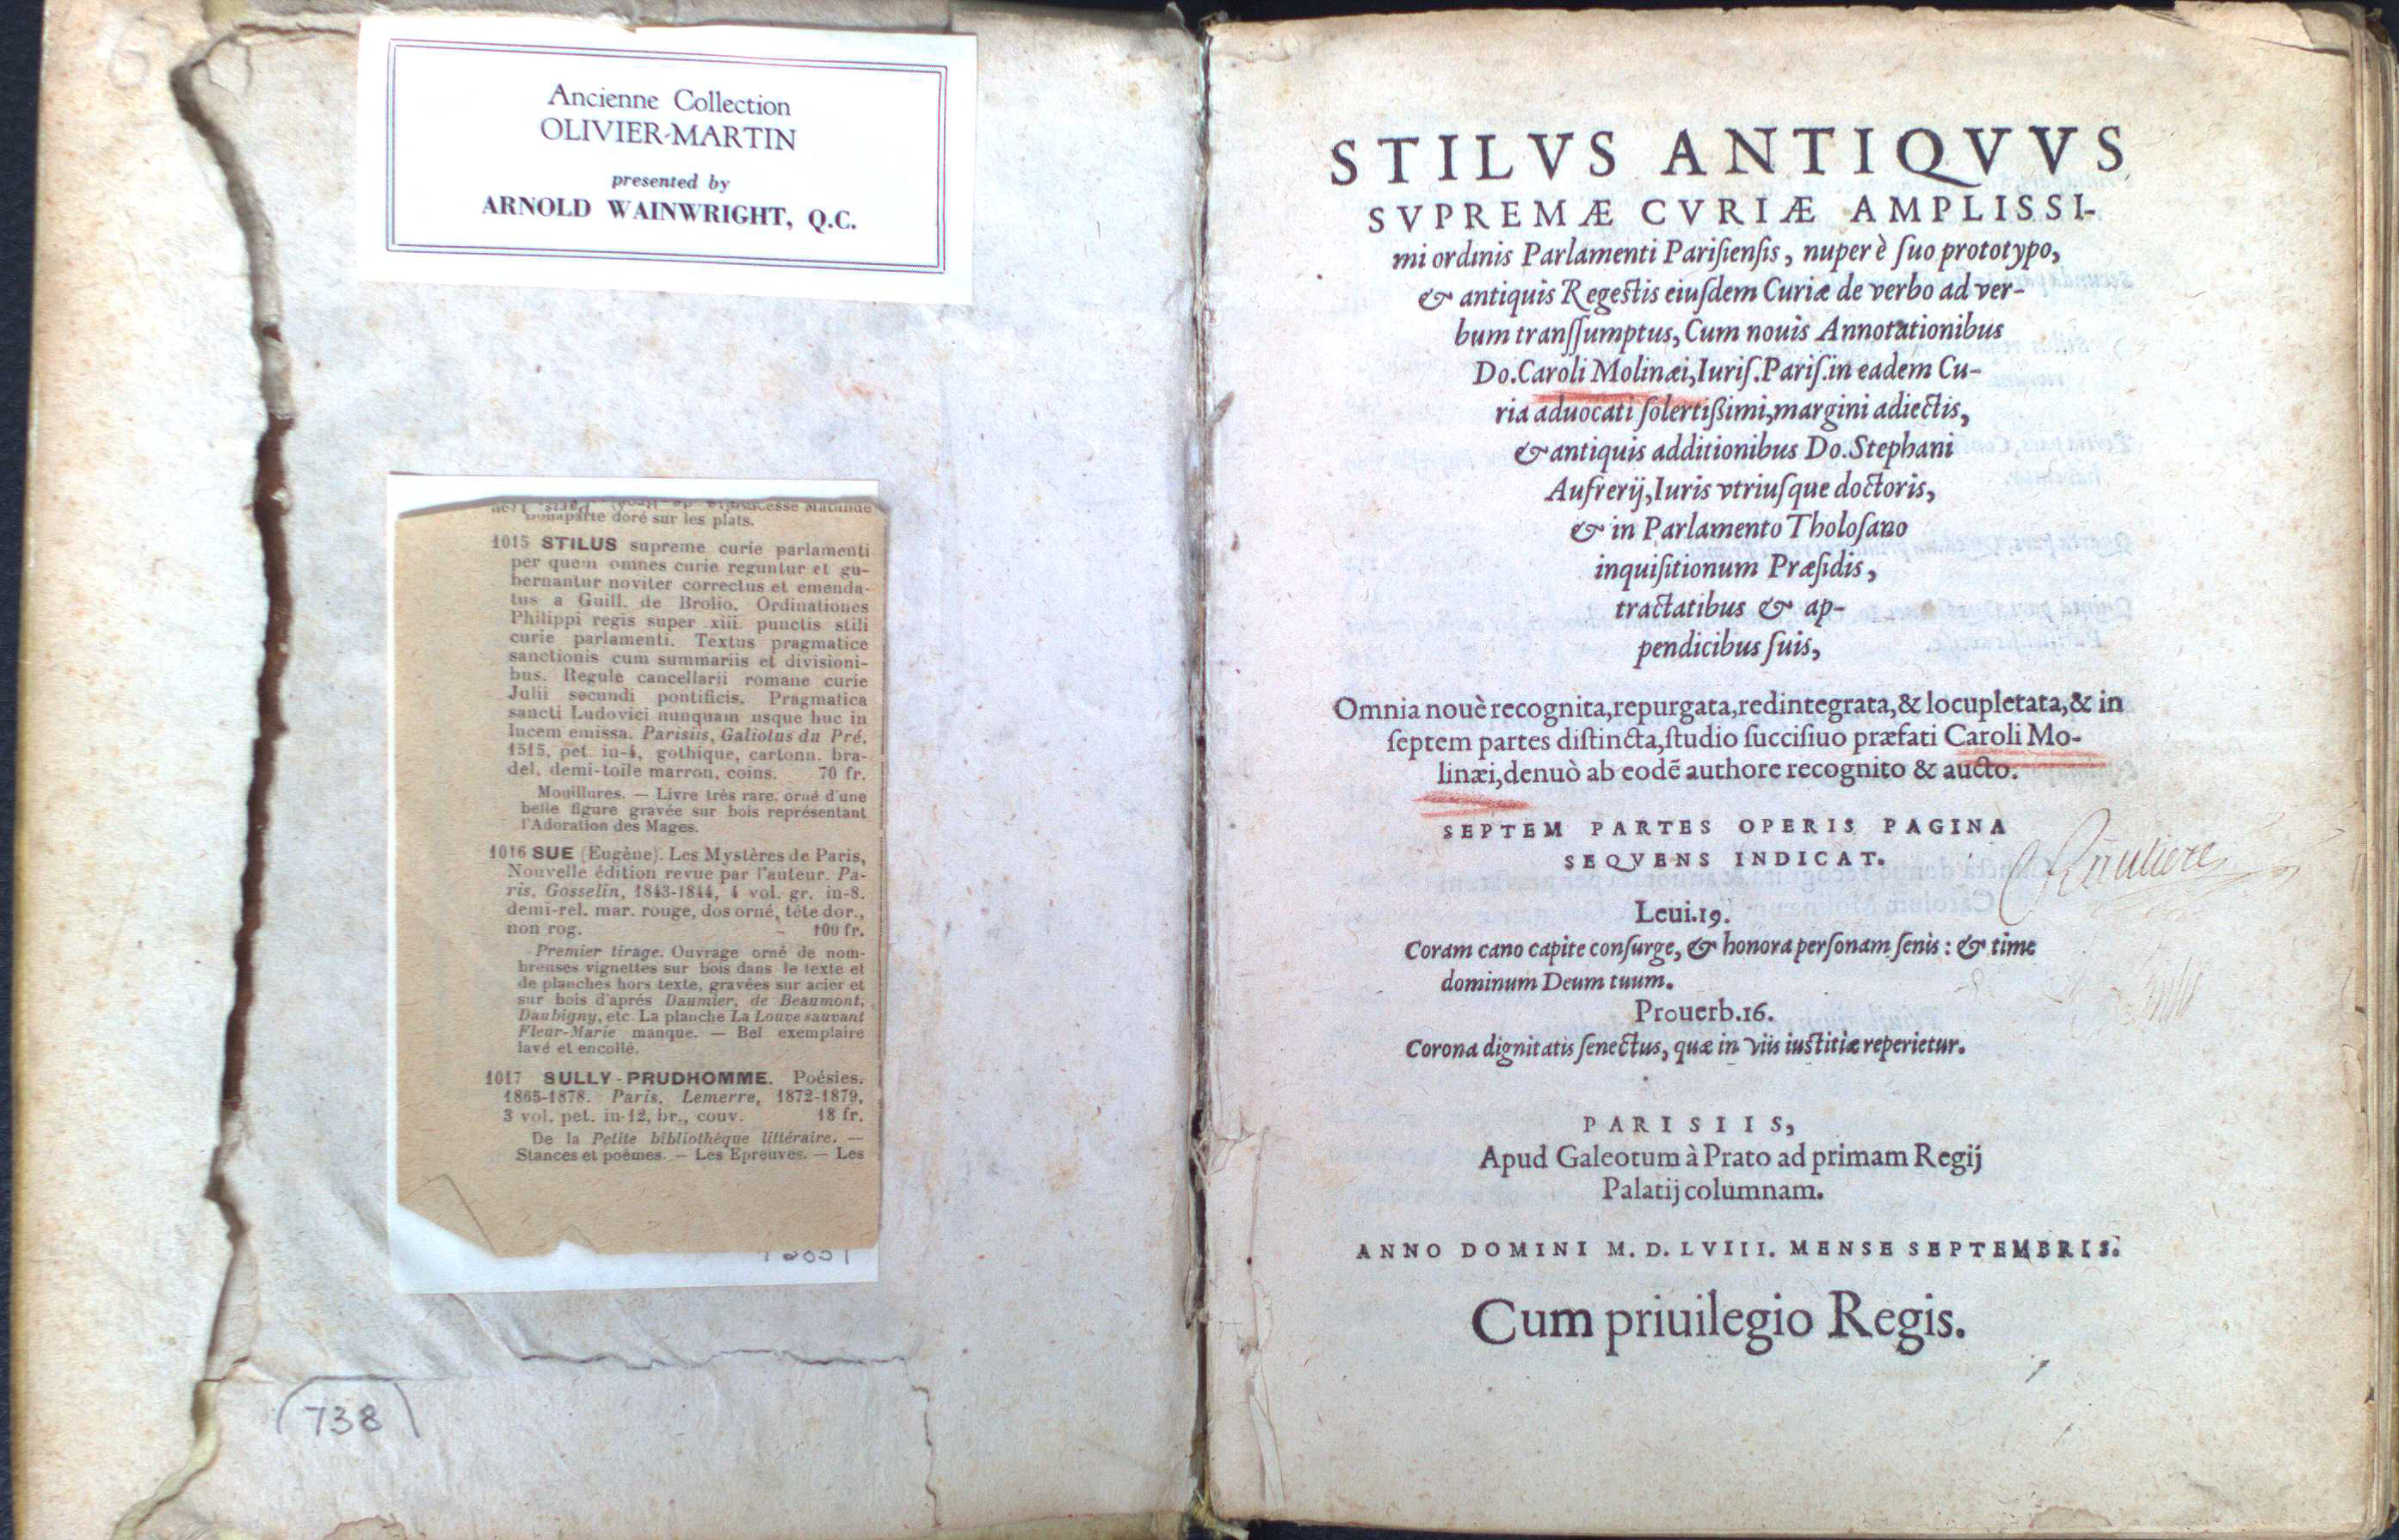 Inside cover of a book with cuttings and markings